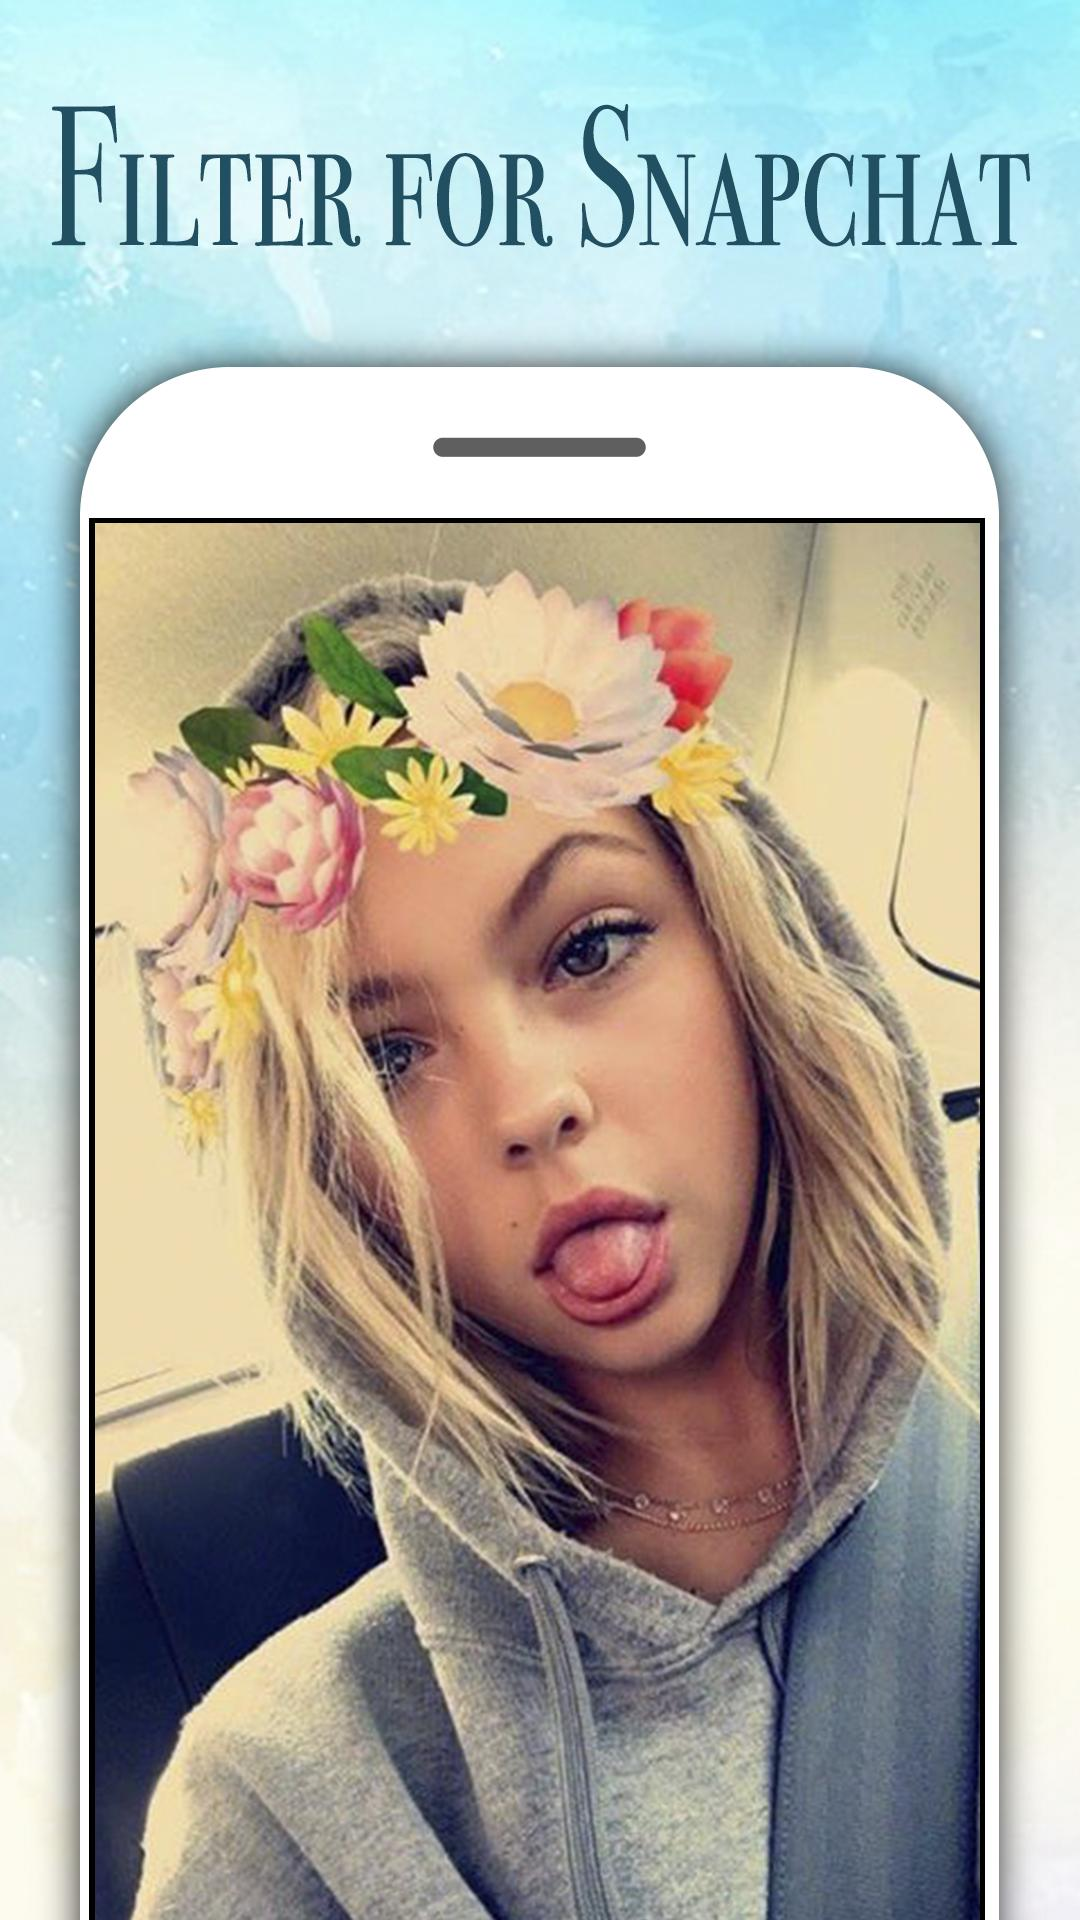 Filter for Snapchat for Android - APK Download